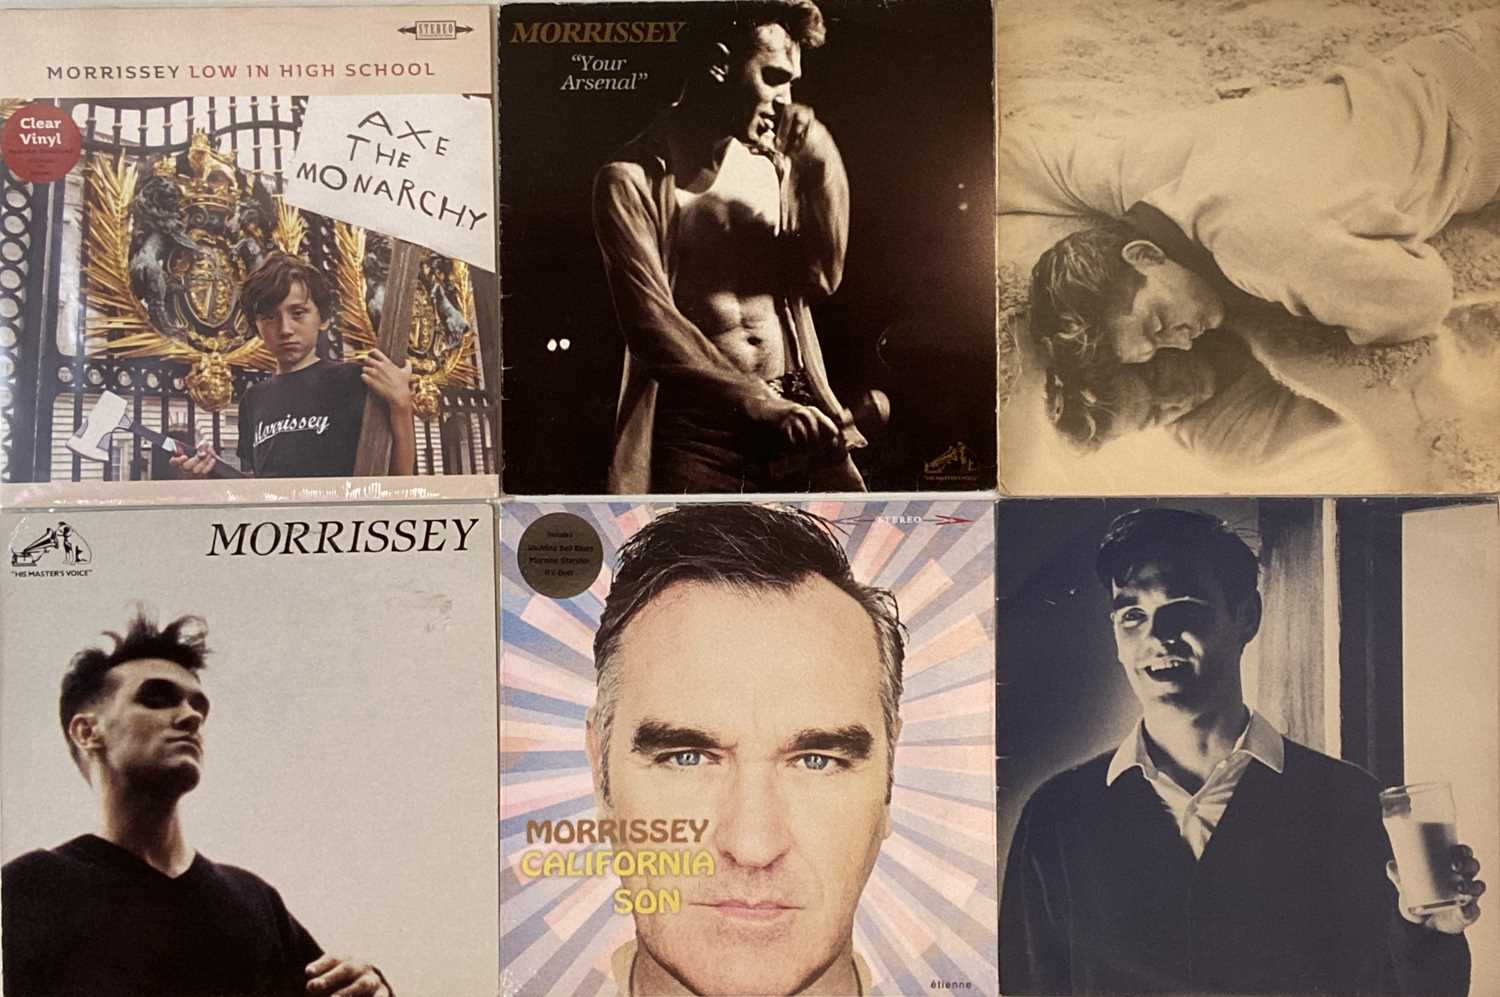 """THE SMITHS/ MORRISSEY - LPs/ 12"""" - Image 2 of 3"""